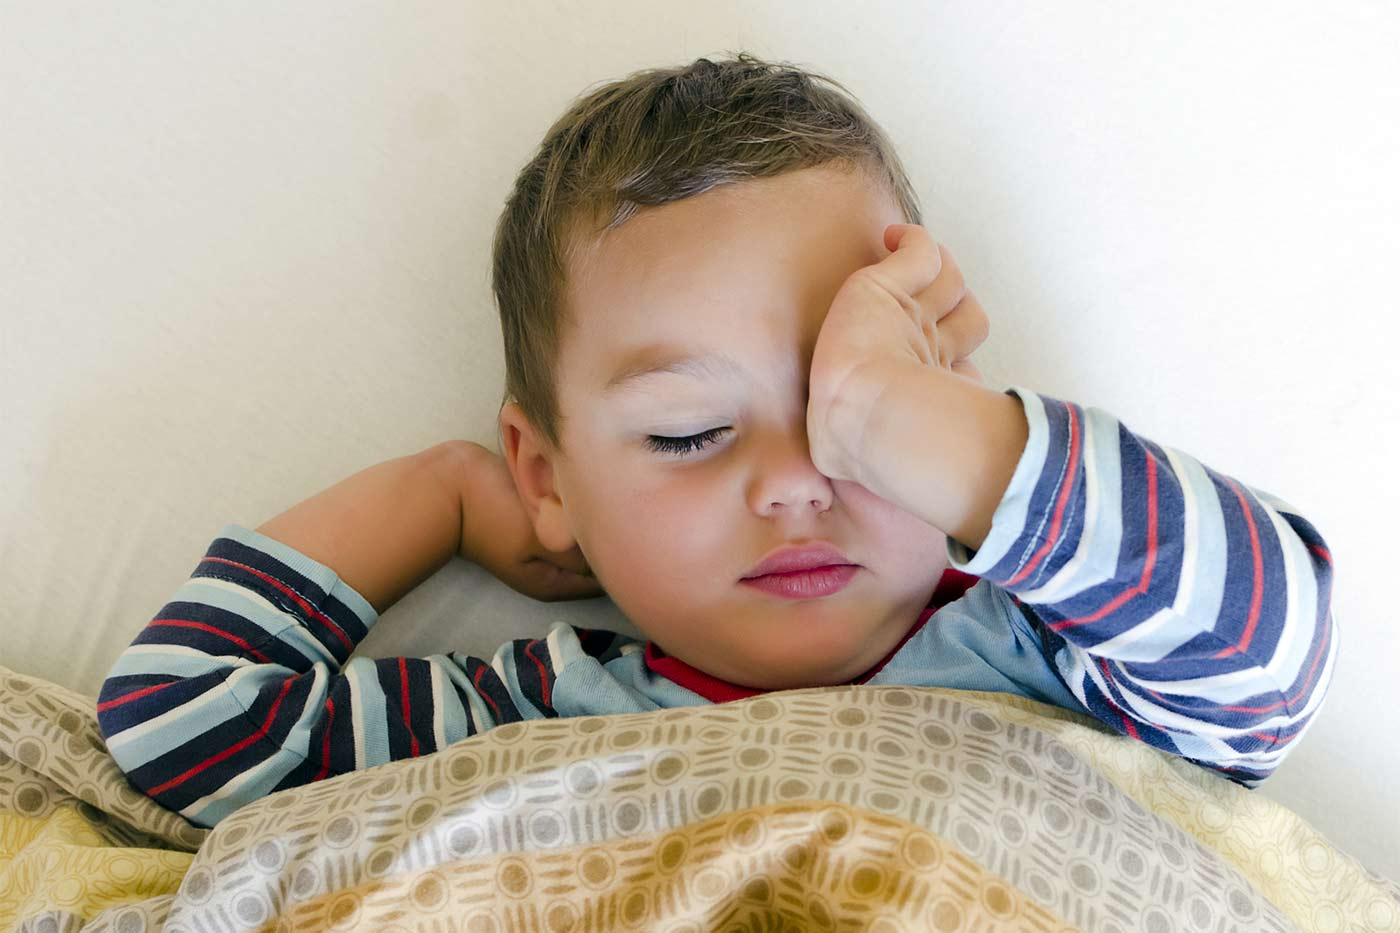 Tired little boy going through a 2 year old sleep regression